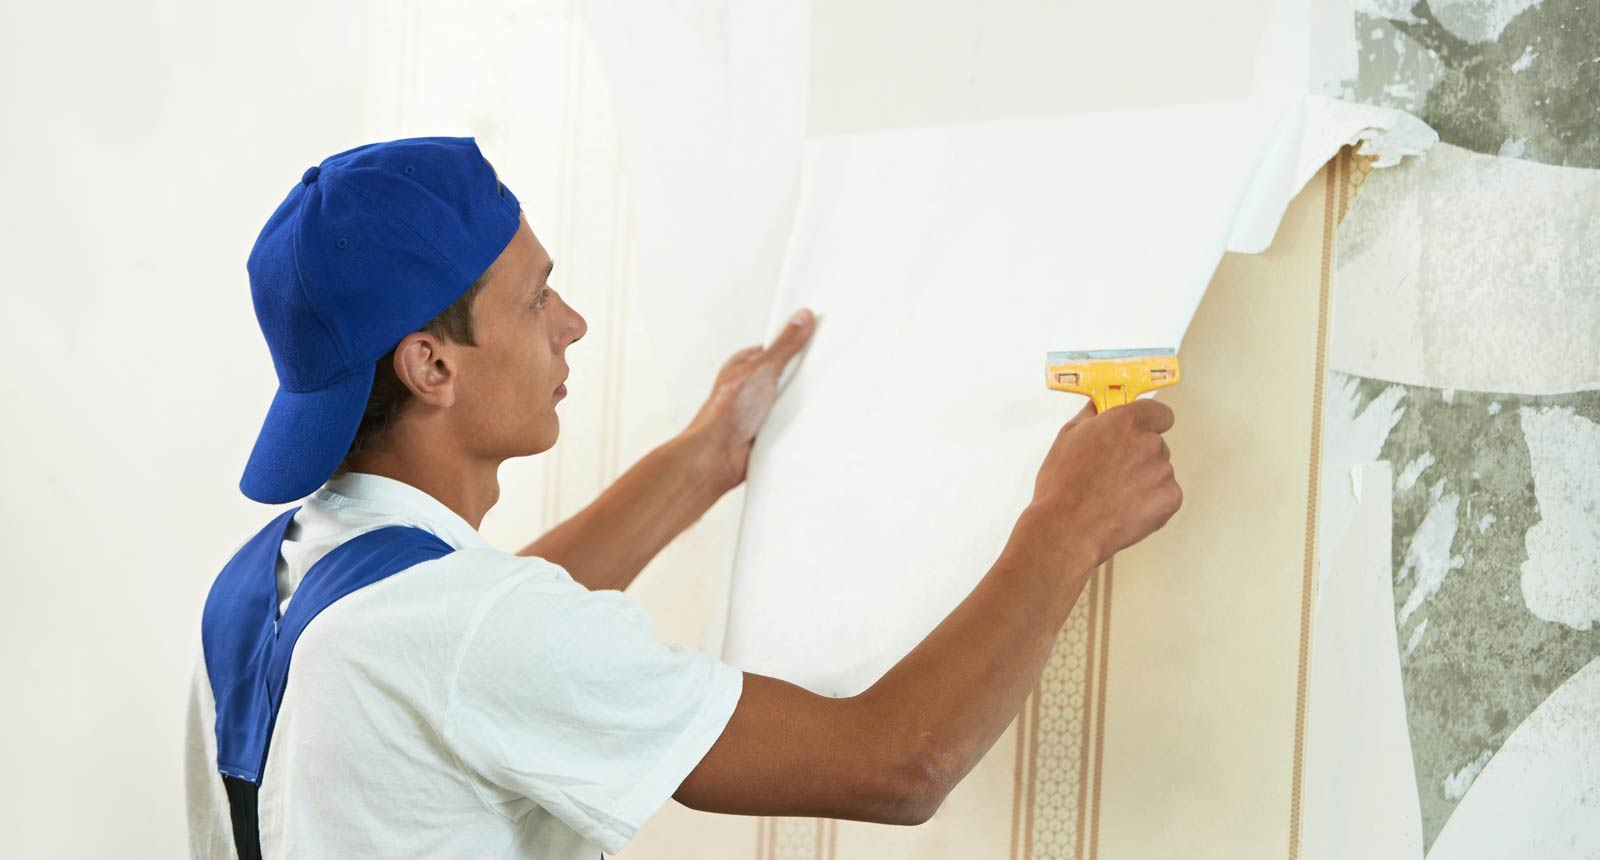 Wallpaper removal services in dubai